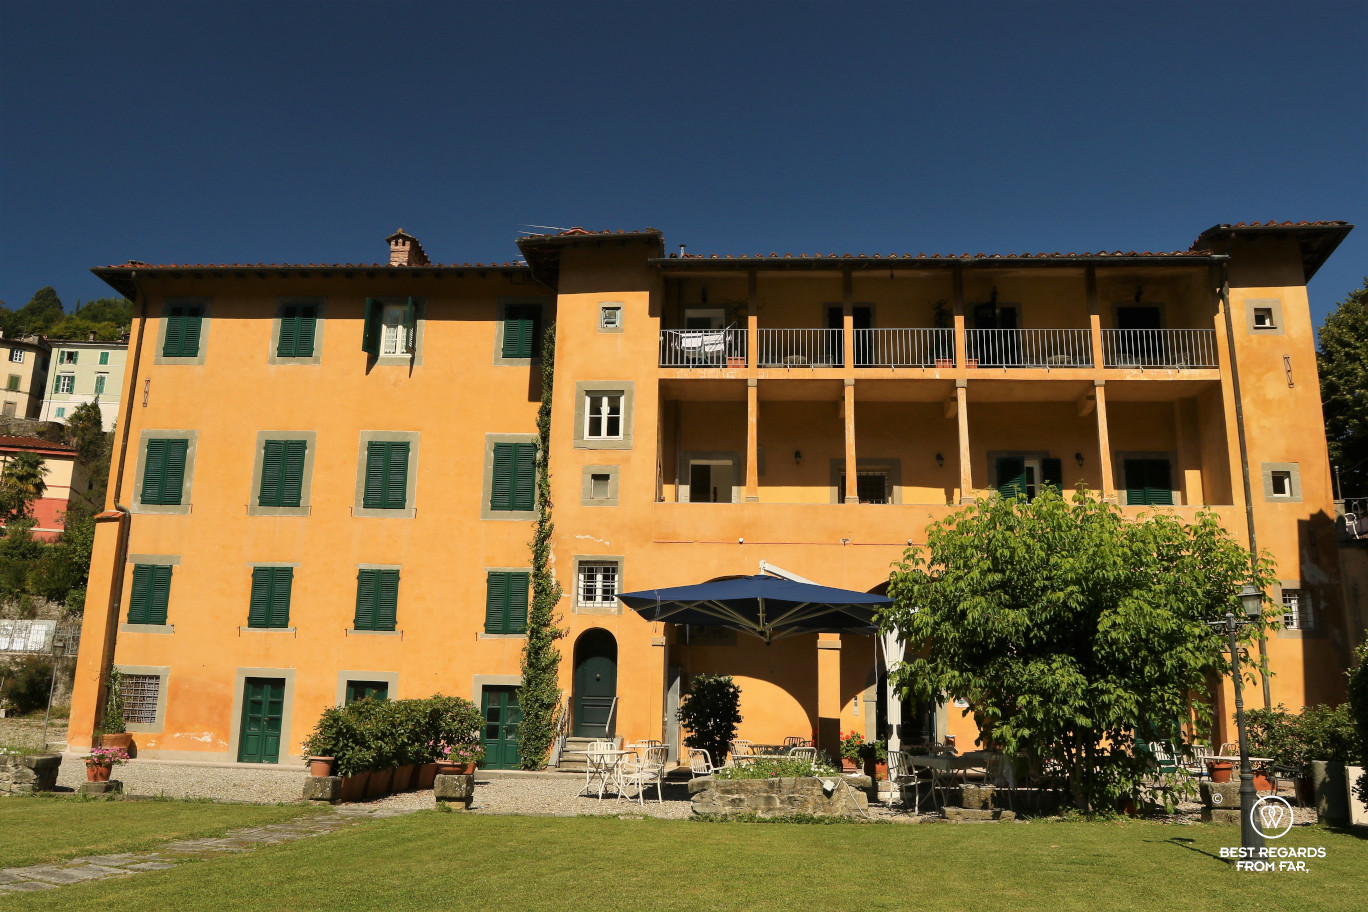 The Park Hotel Regina where Puccini used to stay in Bagni di Lucca, Italy.